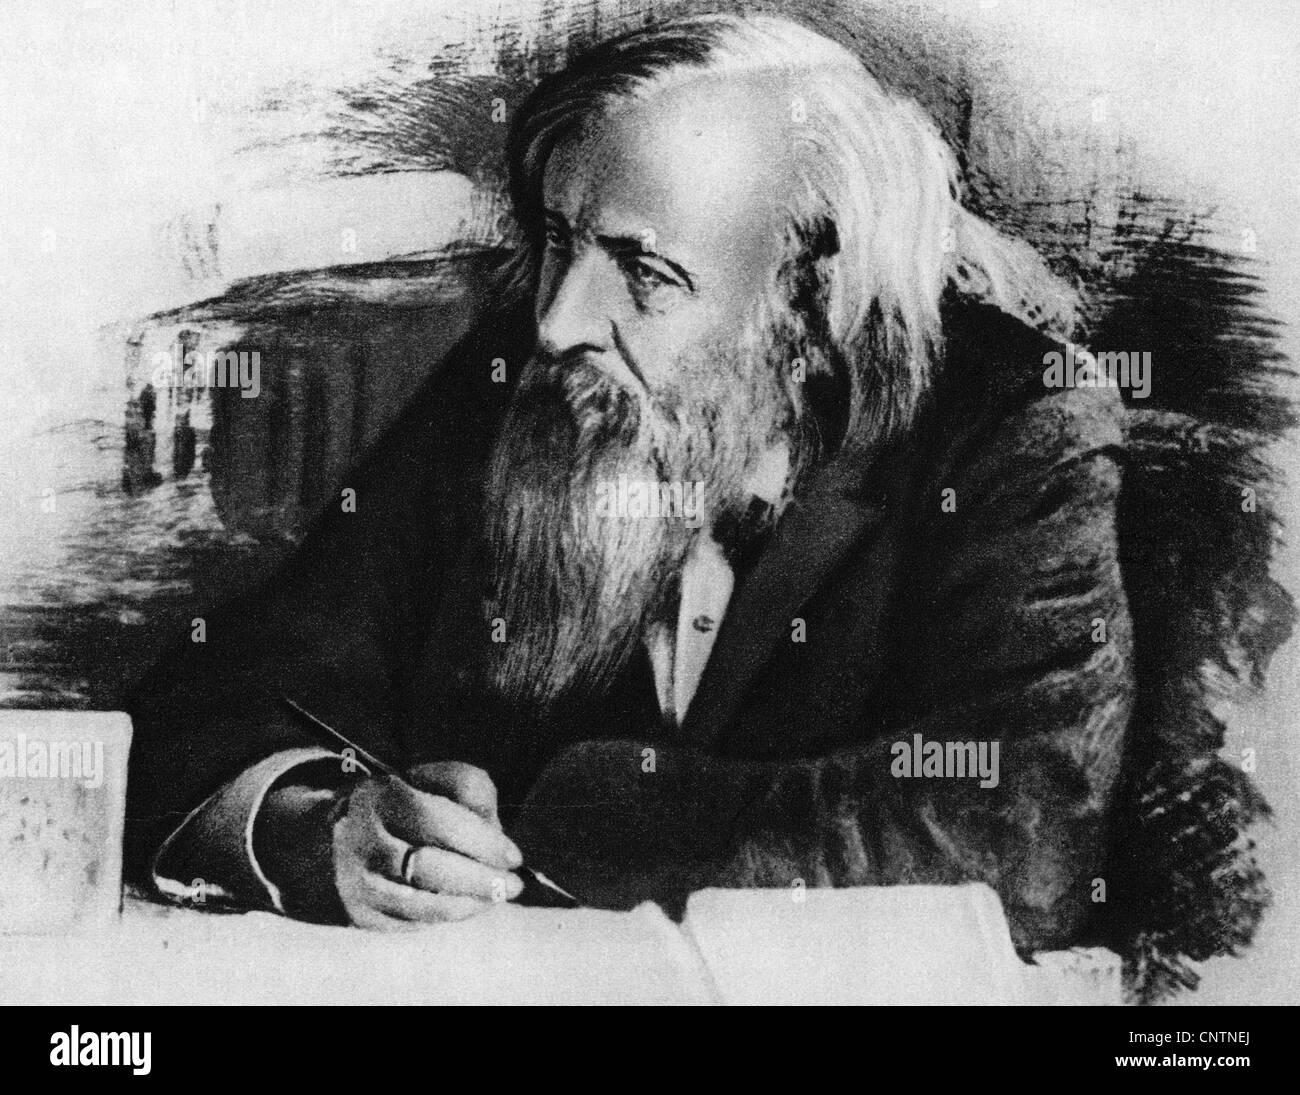 Mendeleev dmitri ivanovich 821834 221907 russian chemist mendeleev dmitri ivanovich 821834 221907 russian chemist inventor of the periodic table of elements portrait drawin gamestrikefo Choice Image